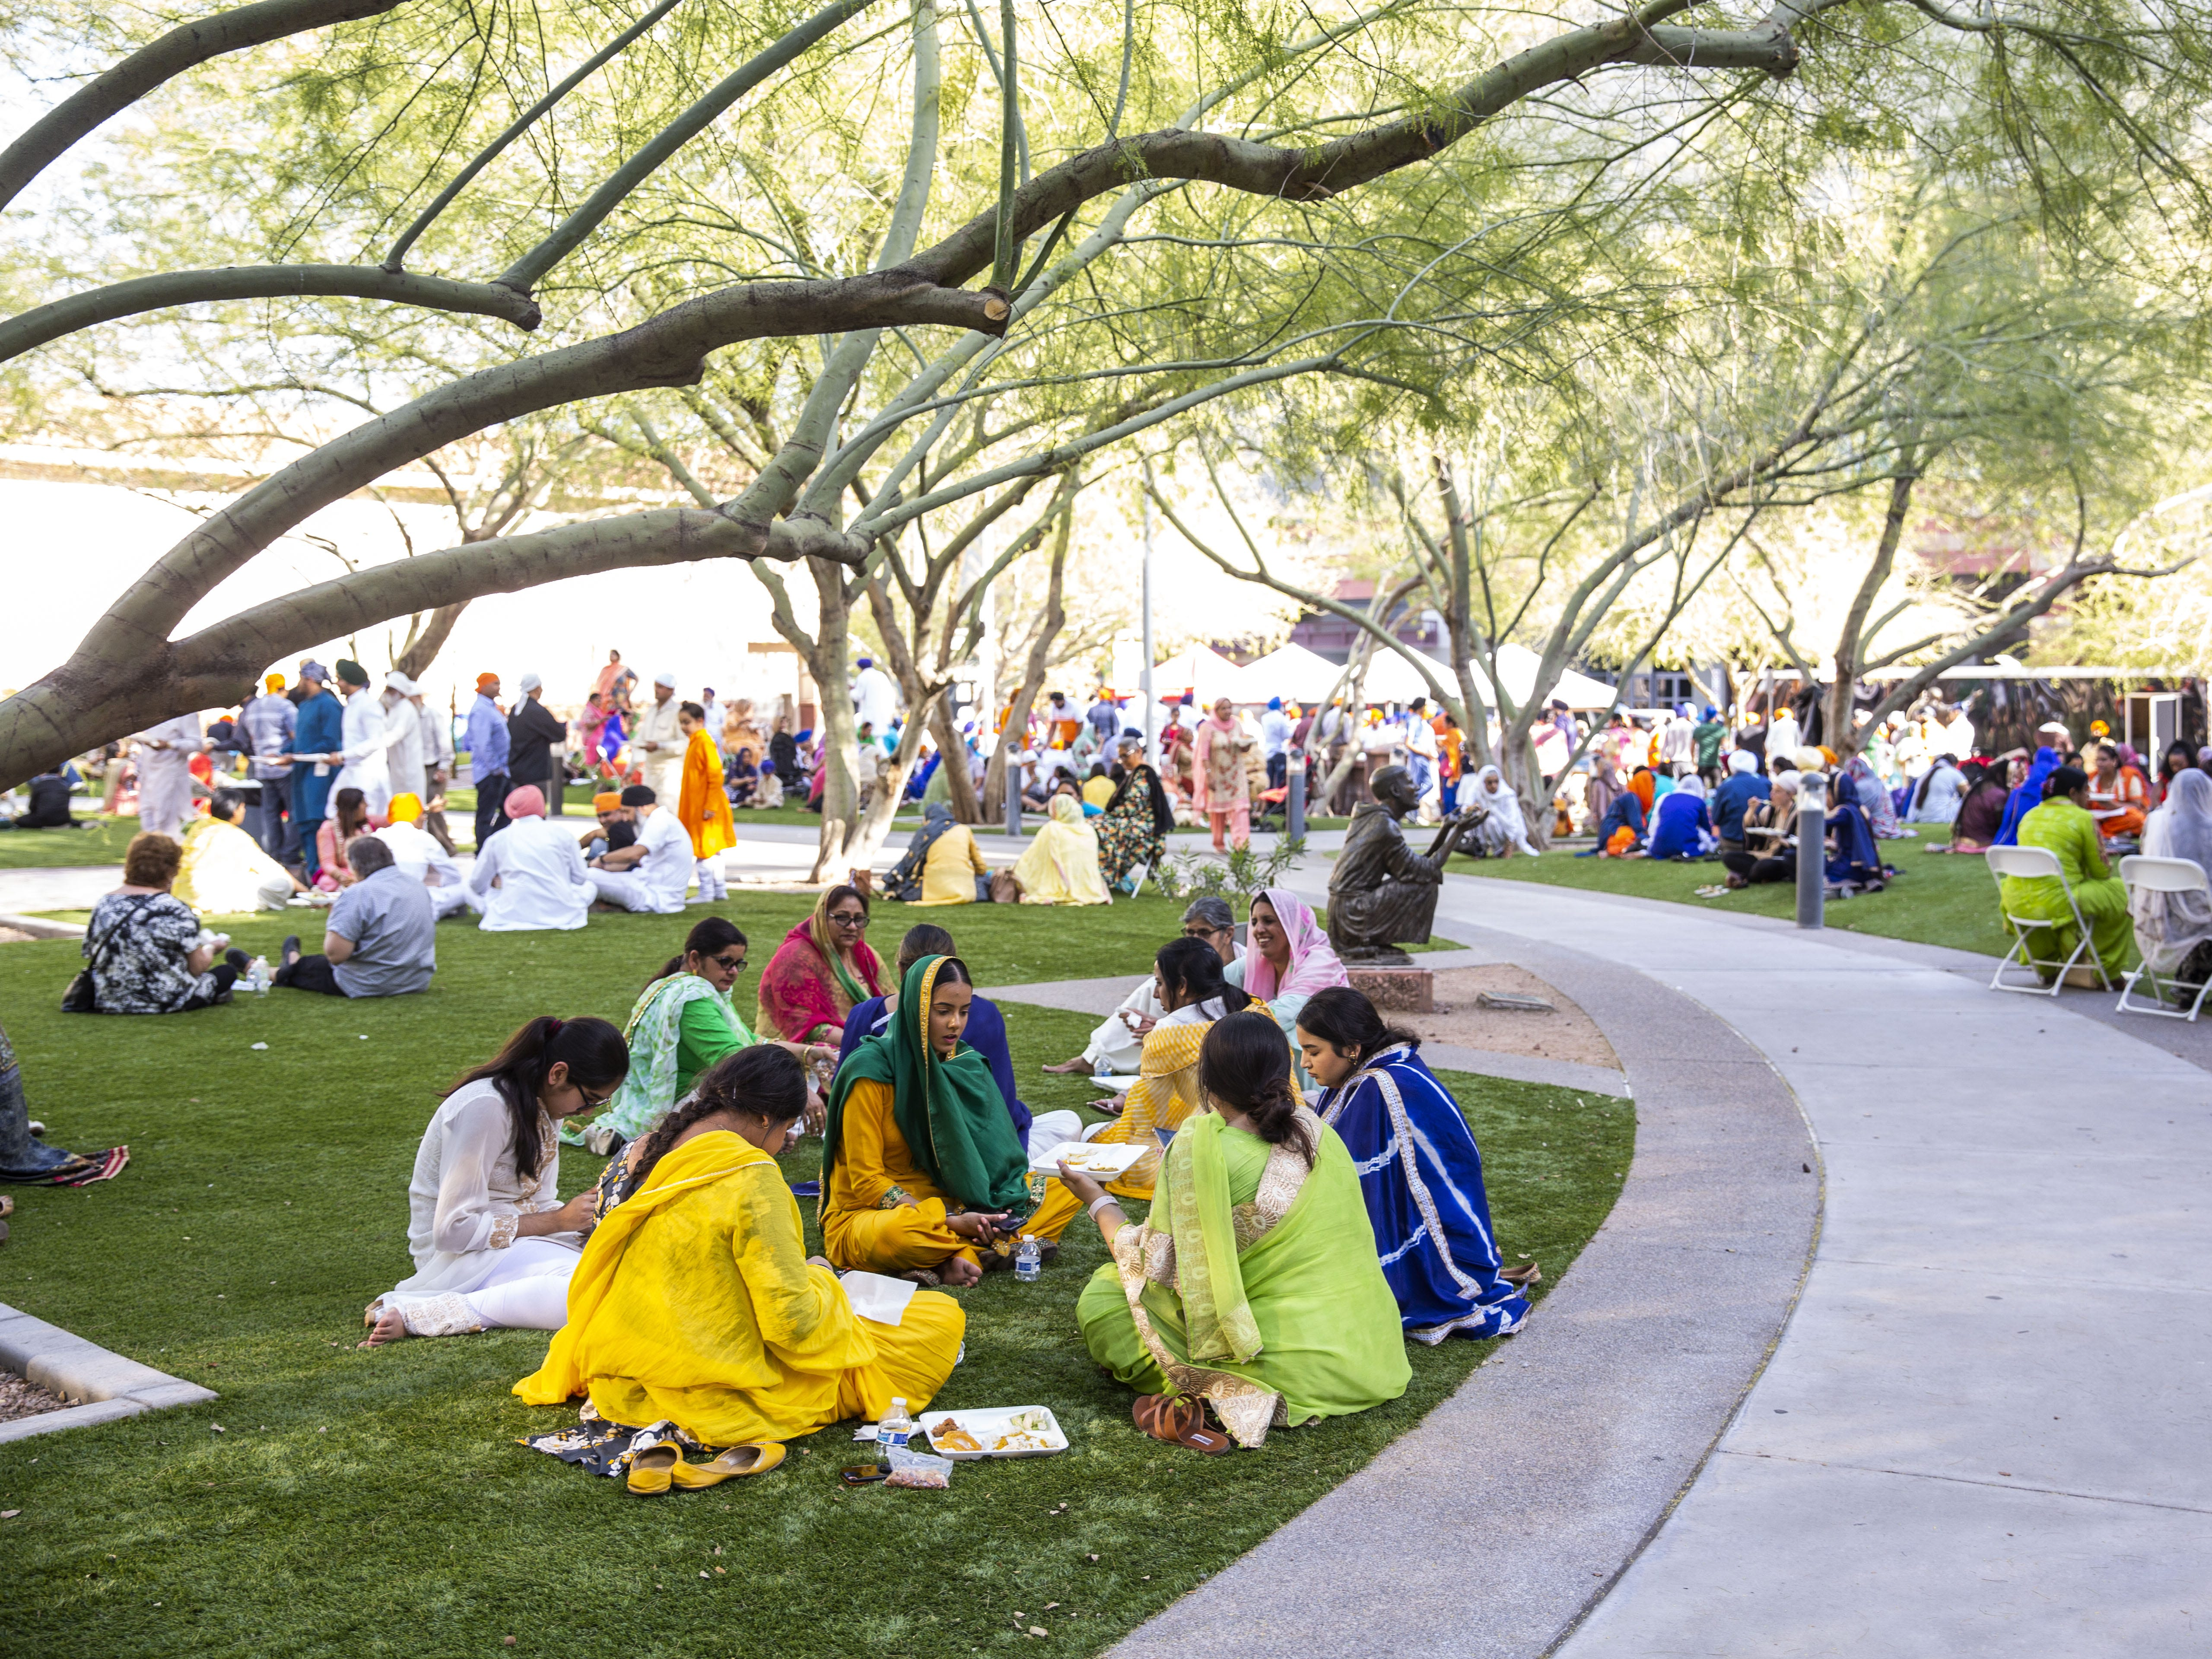 Families sit down by the Phoenix Convention Center and eat traditional food to celebrate Sikh traditions on March 24, 2019.